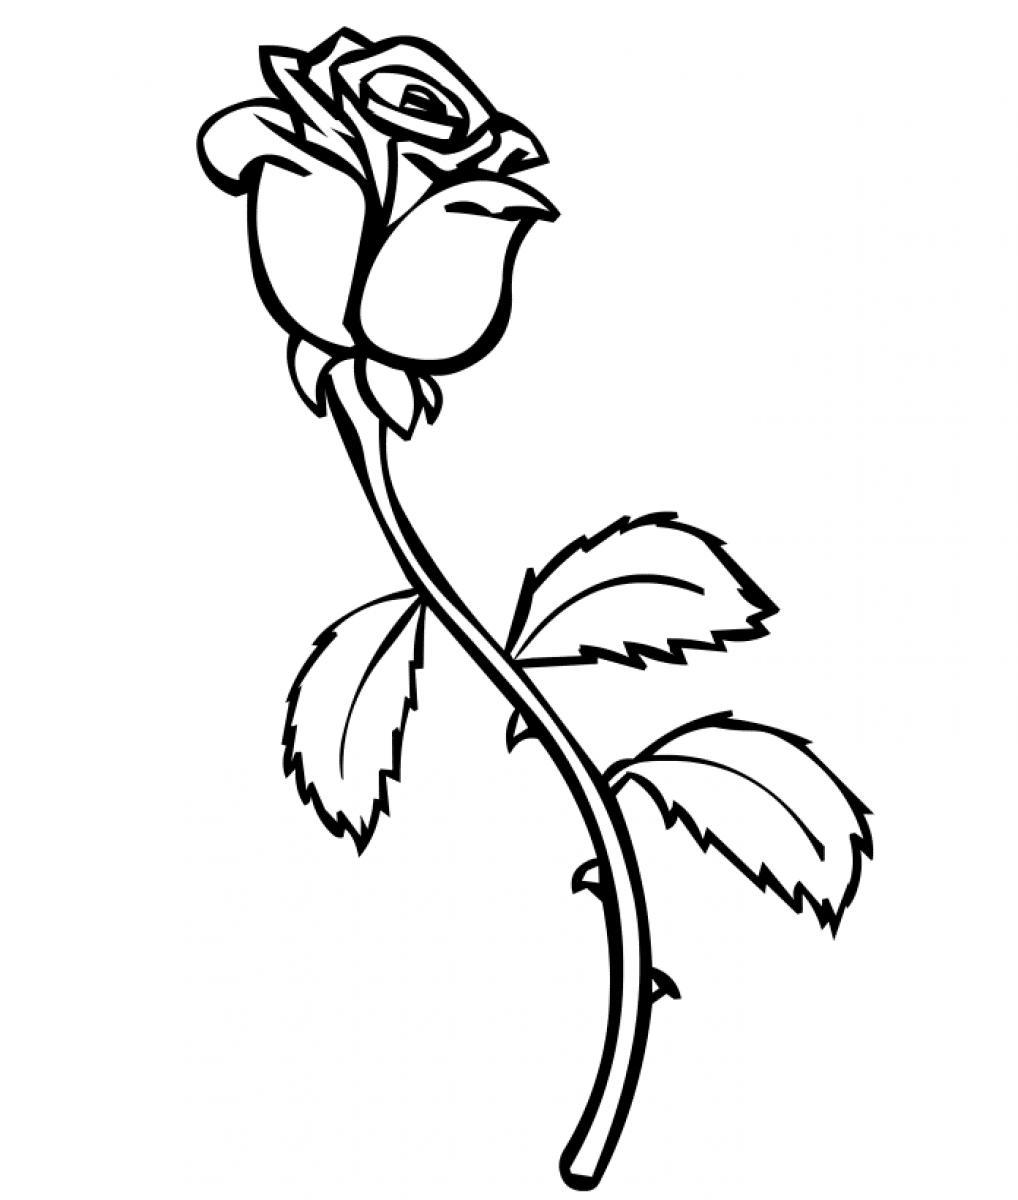 rose coloring sheet flower coloring pages free printable roses coloring pages for kids sheet pages flower coloring rose coloring